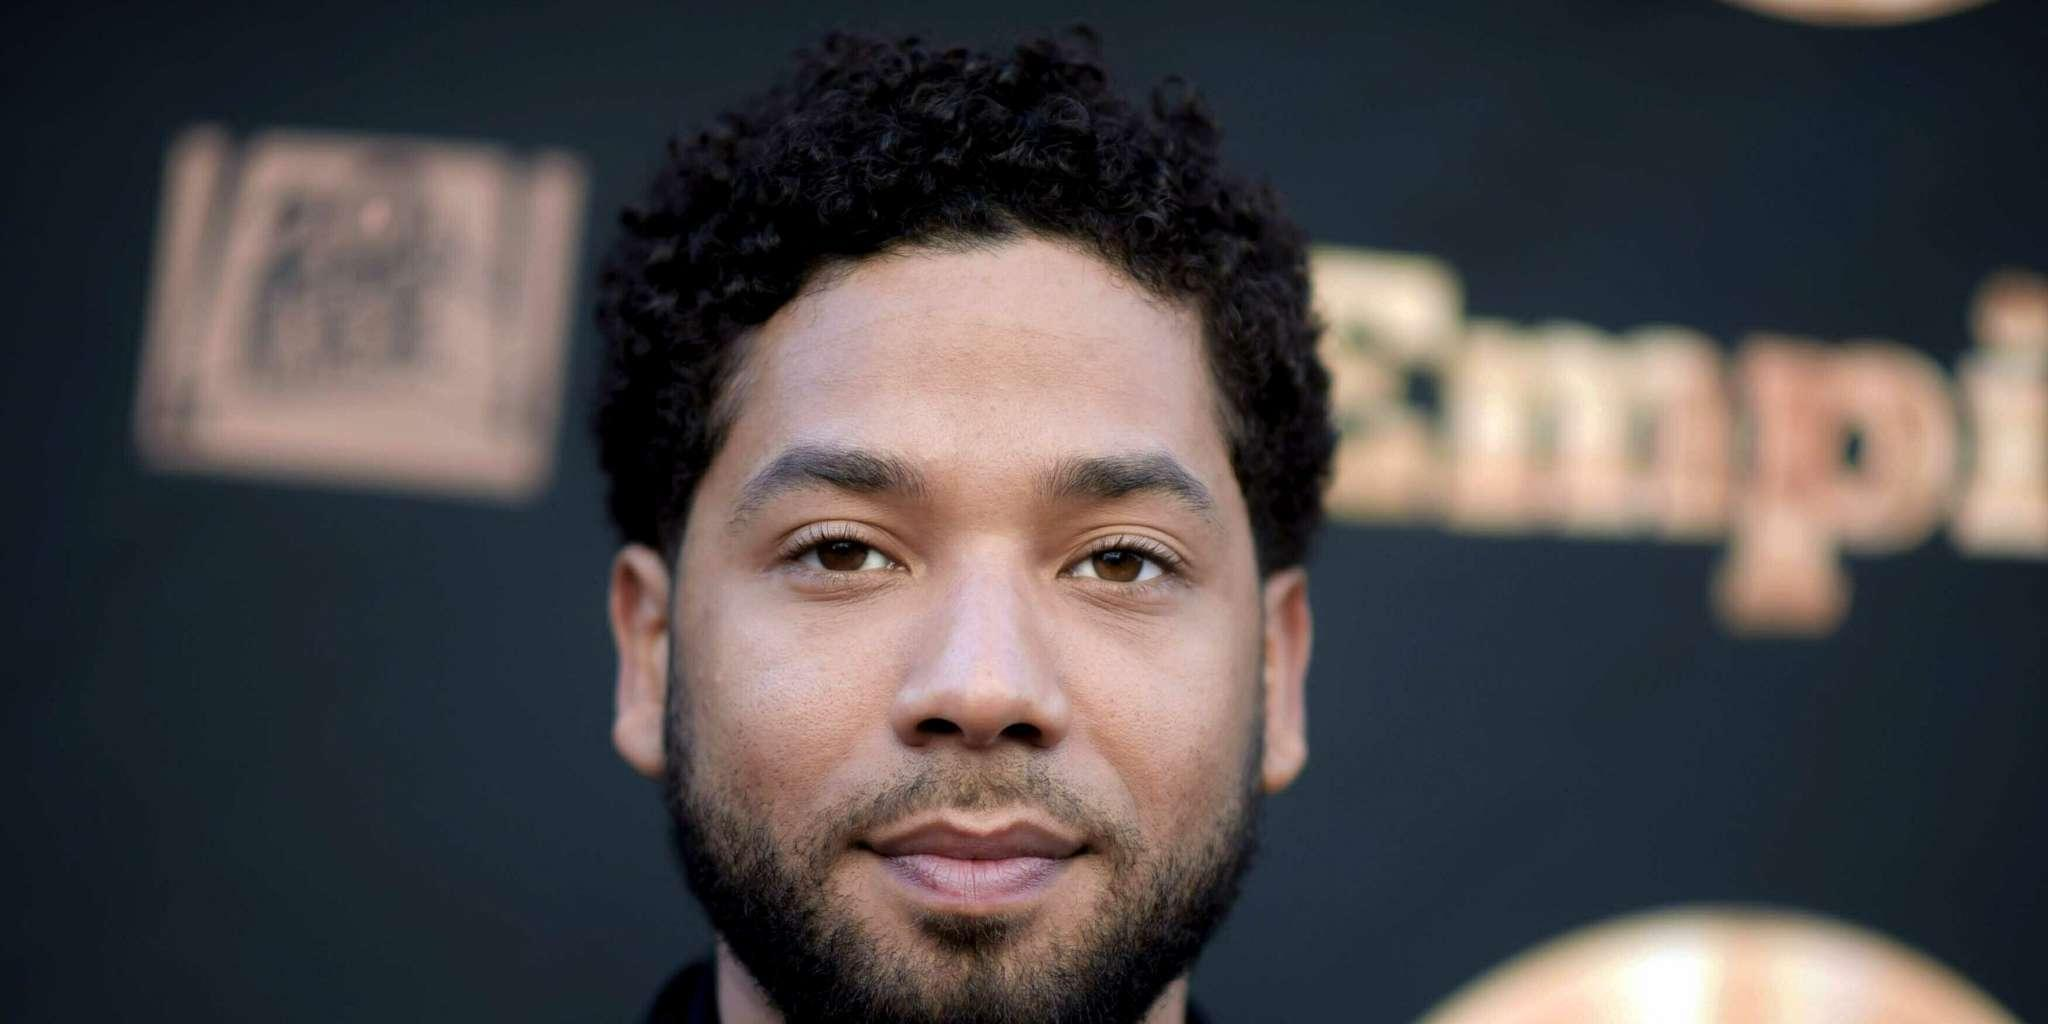 Jussie Smollett Faces Time In Prison If It Turns Out He Faked Hate Crime - Details!